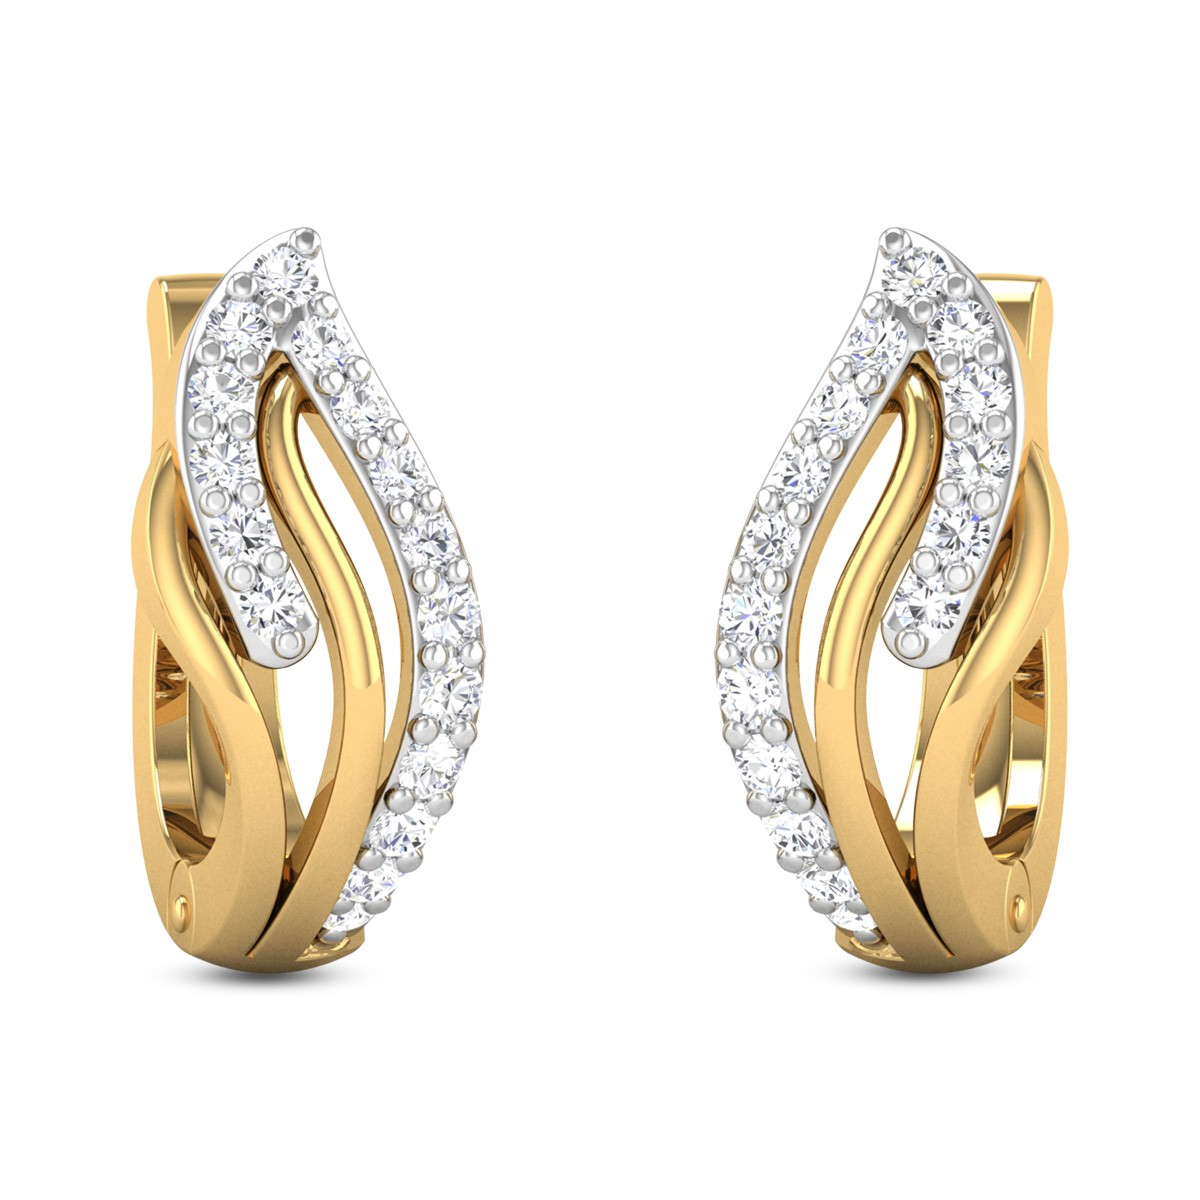 Rhiannon Diamond Earrings